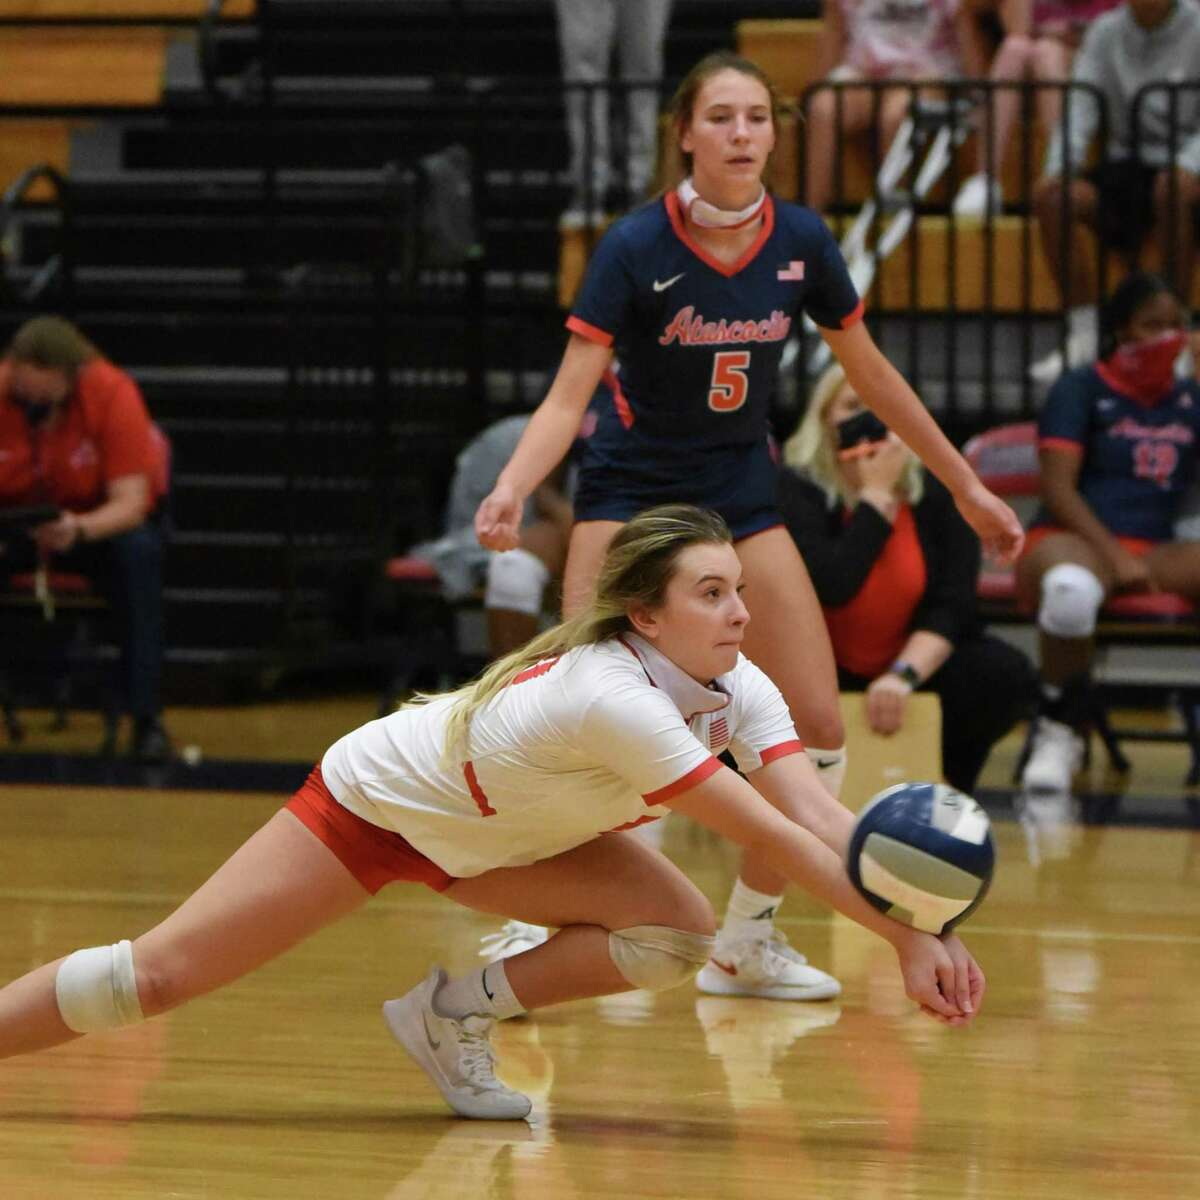 Atascocita libero Kayden Tanner goes for a dig to set up the Lady Eagles offense in a District 21-6A match against Summer Creek.